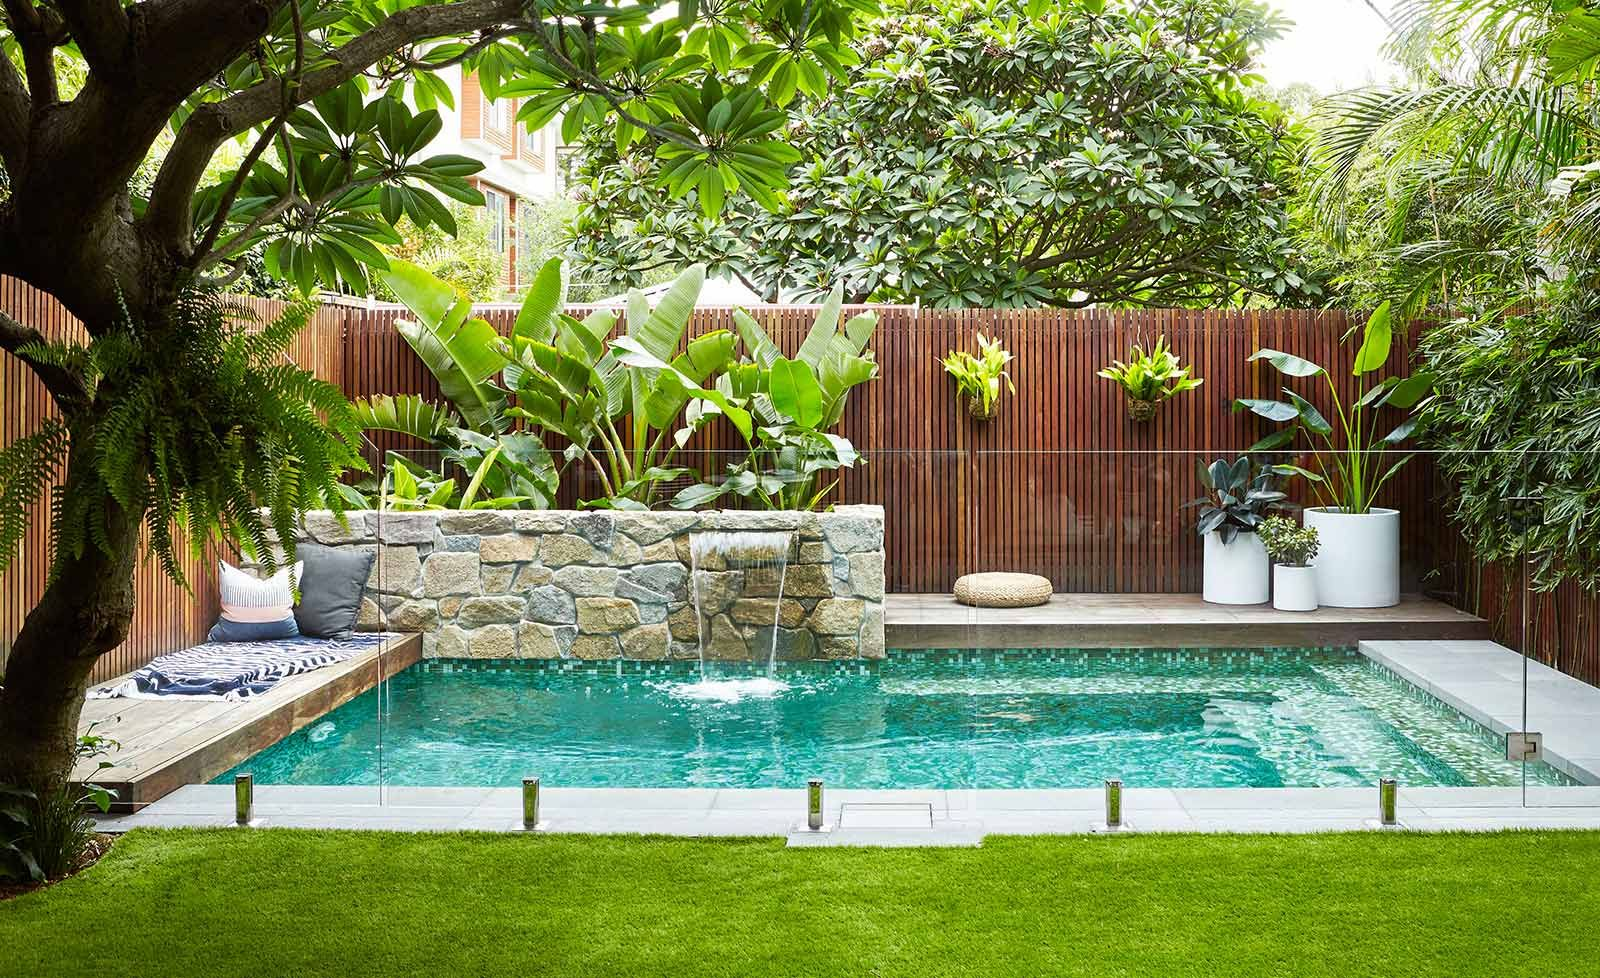 Image Result For Backyard Gardens Sydney Backyard Pool Pinterest Pool Landscaping Small